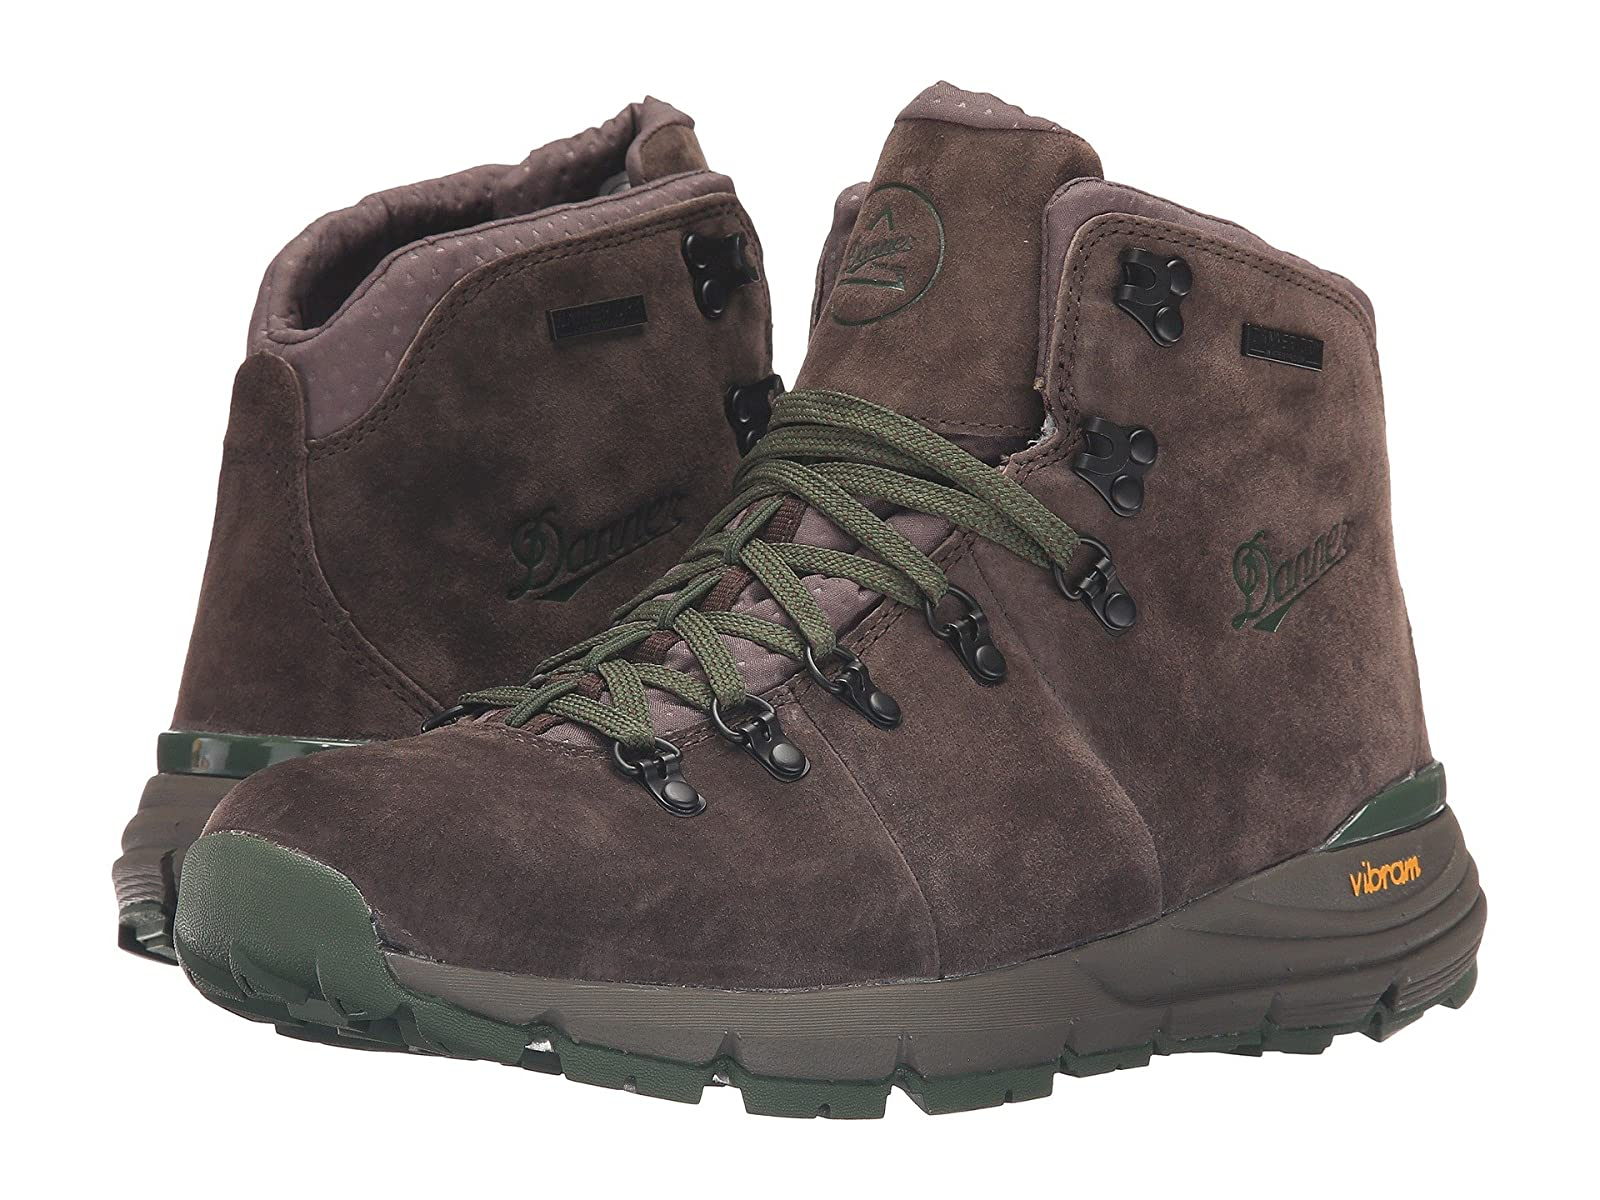 """Danner Mountain 600 4.5""""Affordable and distinctive shoes"""